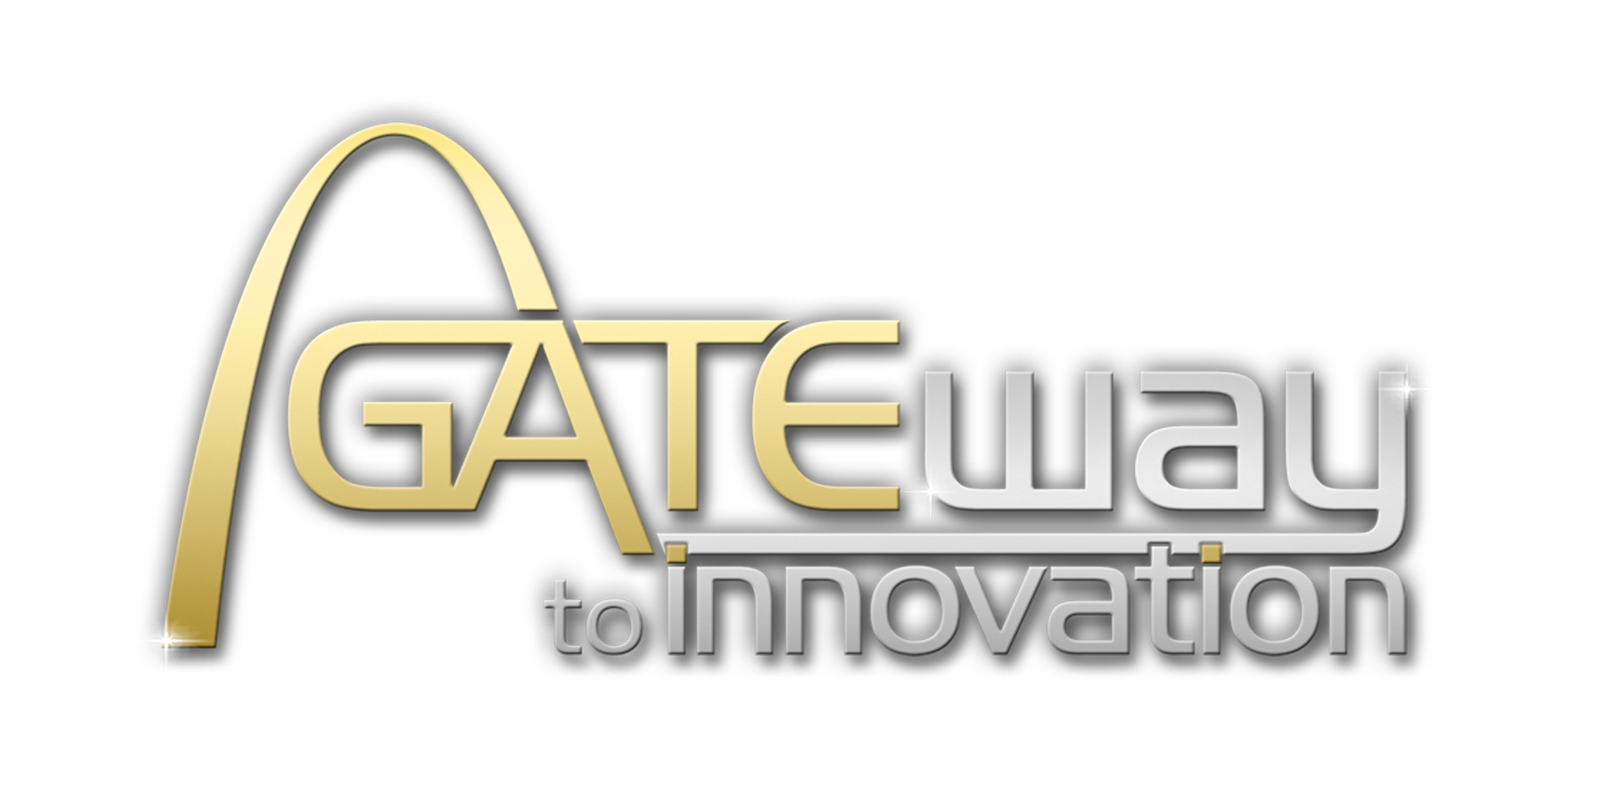 Gateway to Innovation, May 16, 2018, St. Louis, MO